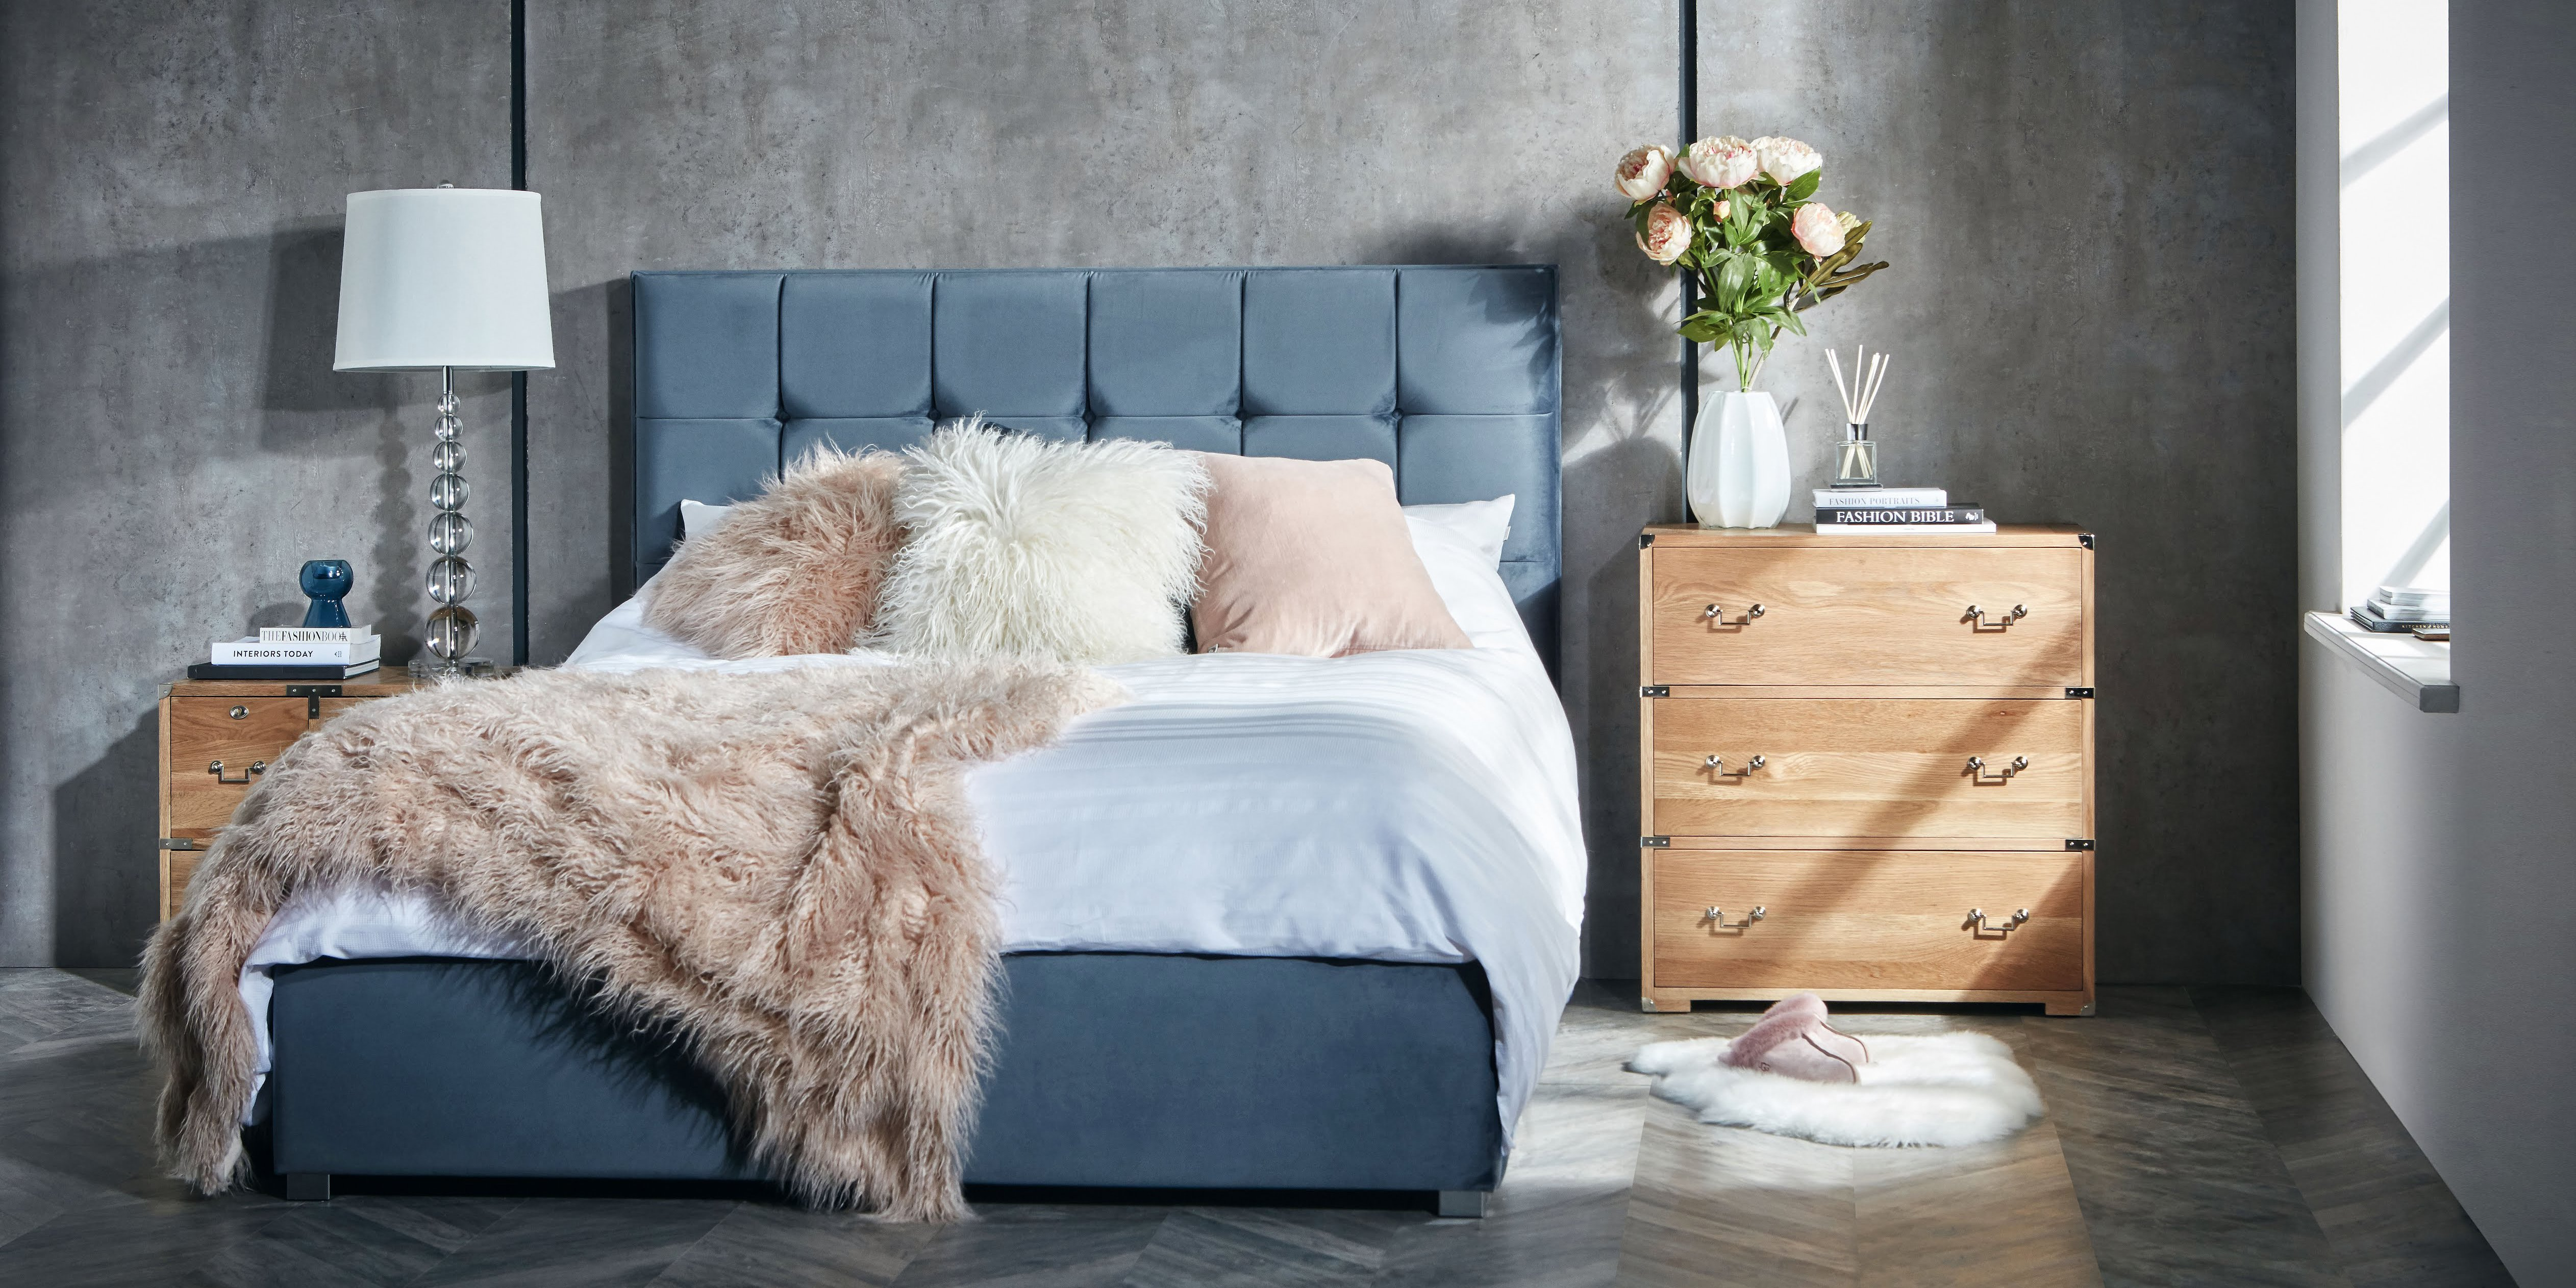 Top tips and essential steps to make your spare bedroom guest worthy